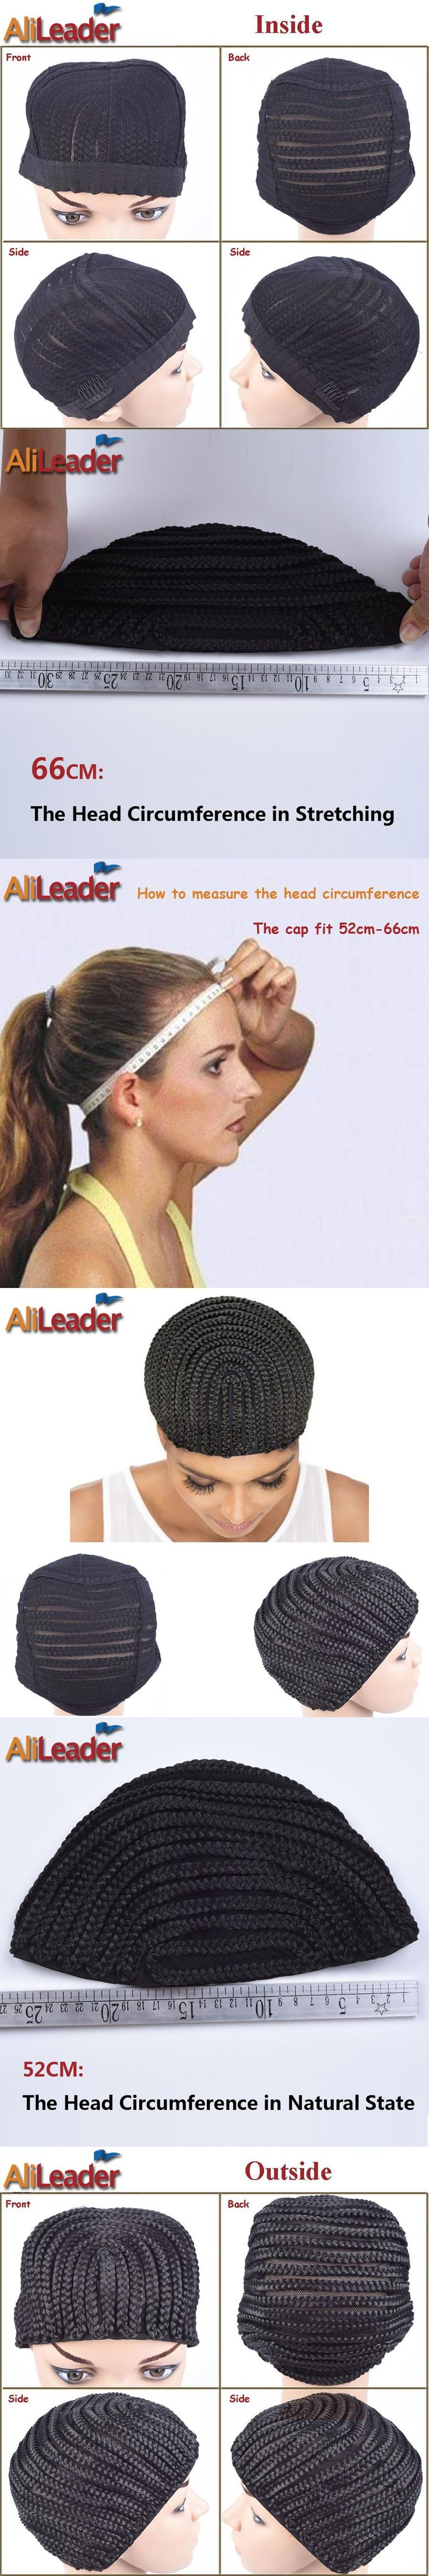 Adjustable Stretching Braided Cornrow Wig Cap For Making Wigs Glueless Wig Making Cap Mesh Hair Net Cornrows Wig Caps 2Pcs/Lot